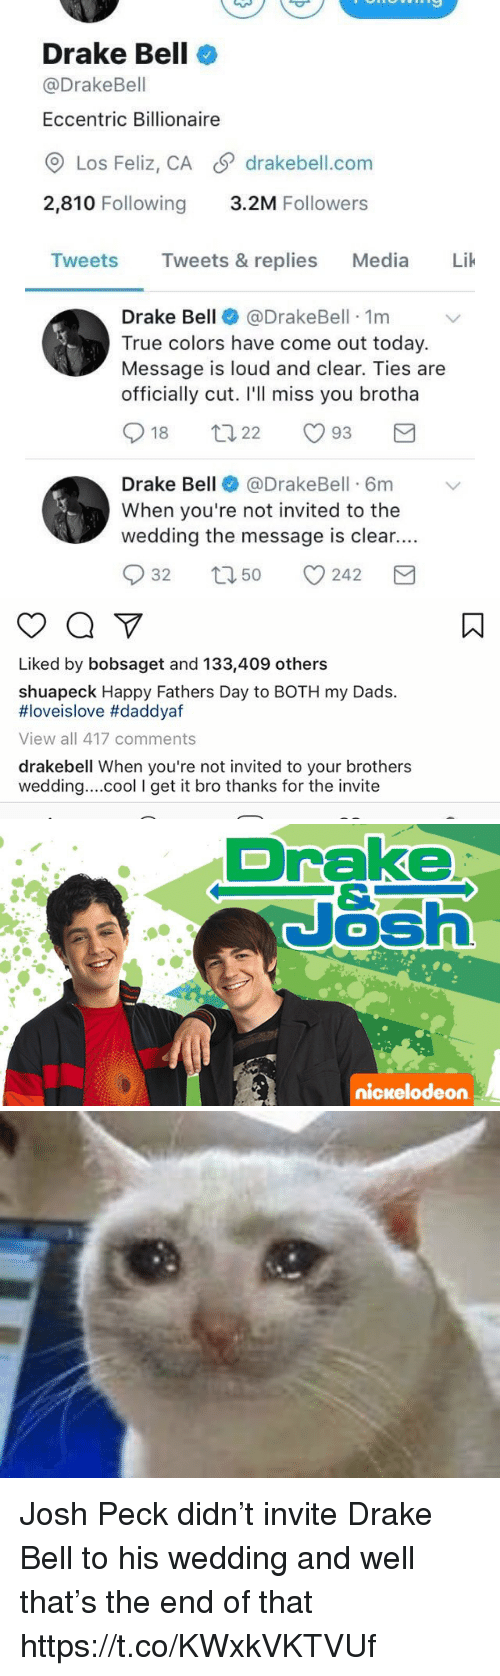 Josh Peck: Drake Bell  @Drake Bell  Eccentric Billionaire  Los Feliz, CA S drakebell.com  2,810 Following  3.2M Followers  Tweets  Tweets & replies  Media  Lik  Drake Bell  @Drake Bell 1m  True colors have come out today.  Message is loud and clear. Ties are  officially cut. I'll miss you brotha  S 18  93  22  Drake Bell  @DrakeBell 6m v  When you're not invited to the  wedding the message is clear.  S 32 t 50  242  M   Liked by bobsaget and 133,409 others  shuapeck Happy Fathers Day to BOTH my Dads.  HIoveislove #daddyaf  View all 417 comments  drakebell When you're not invited to your brothers  wedding... cool l get it  bro thanks for the invite   Drake  Nash  nickelodeon Josh Peck didn't invite Drake Bell to his wedding and well that's the end of that https://t.co/KWxkVKTVUf